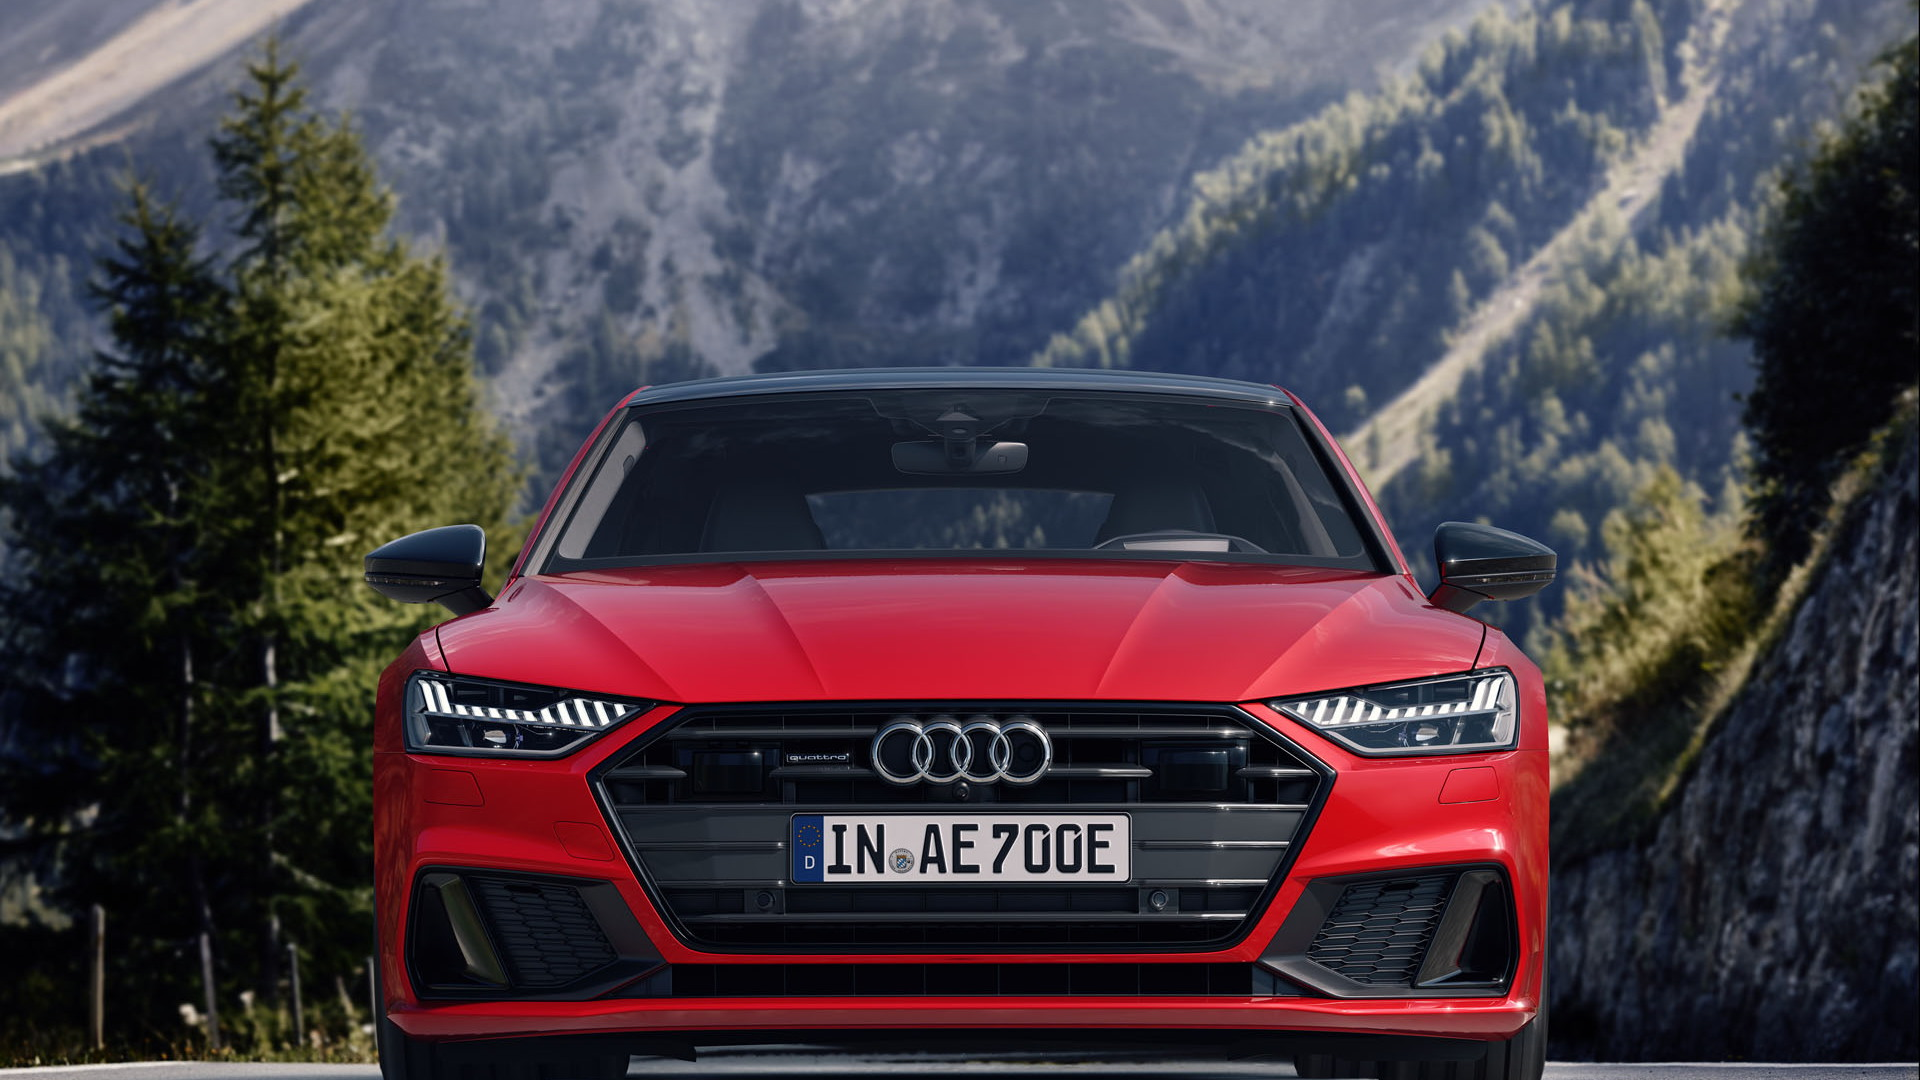 2021 Audi A7 55 Tfsi E Is A Svelte Plug In Hybrid Priced From 75 895